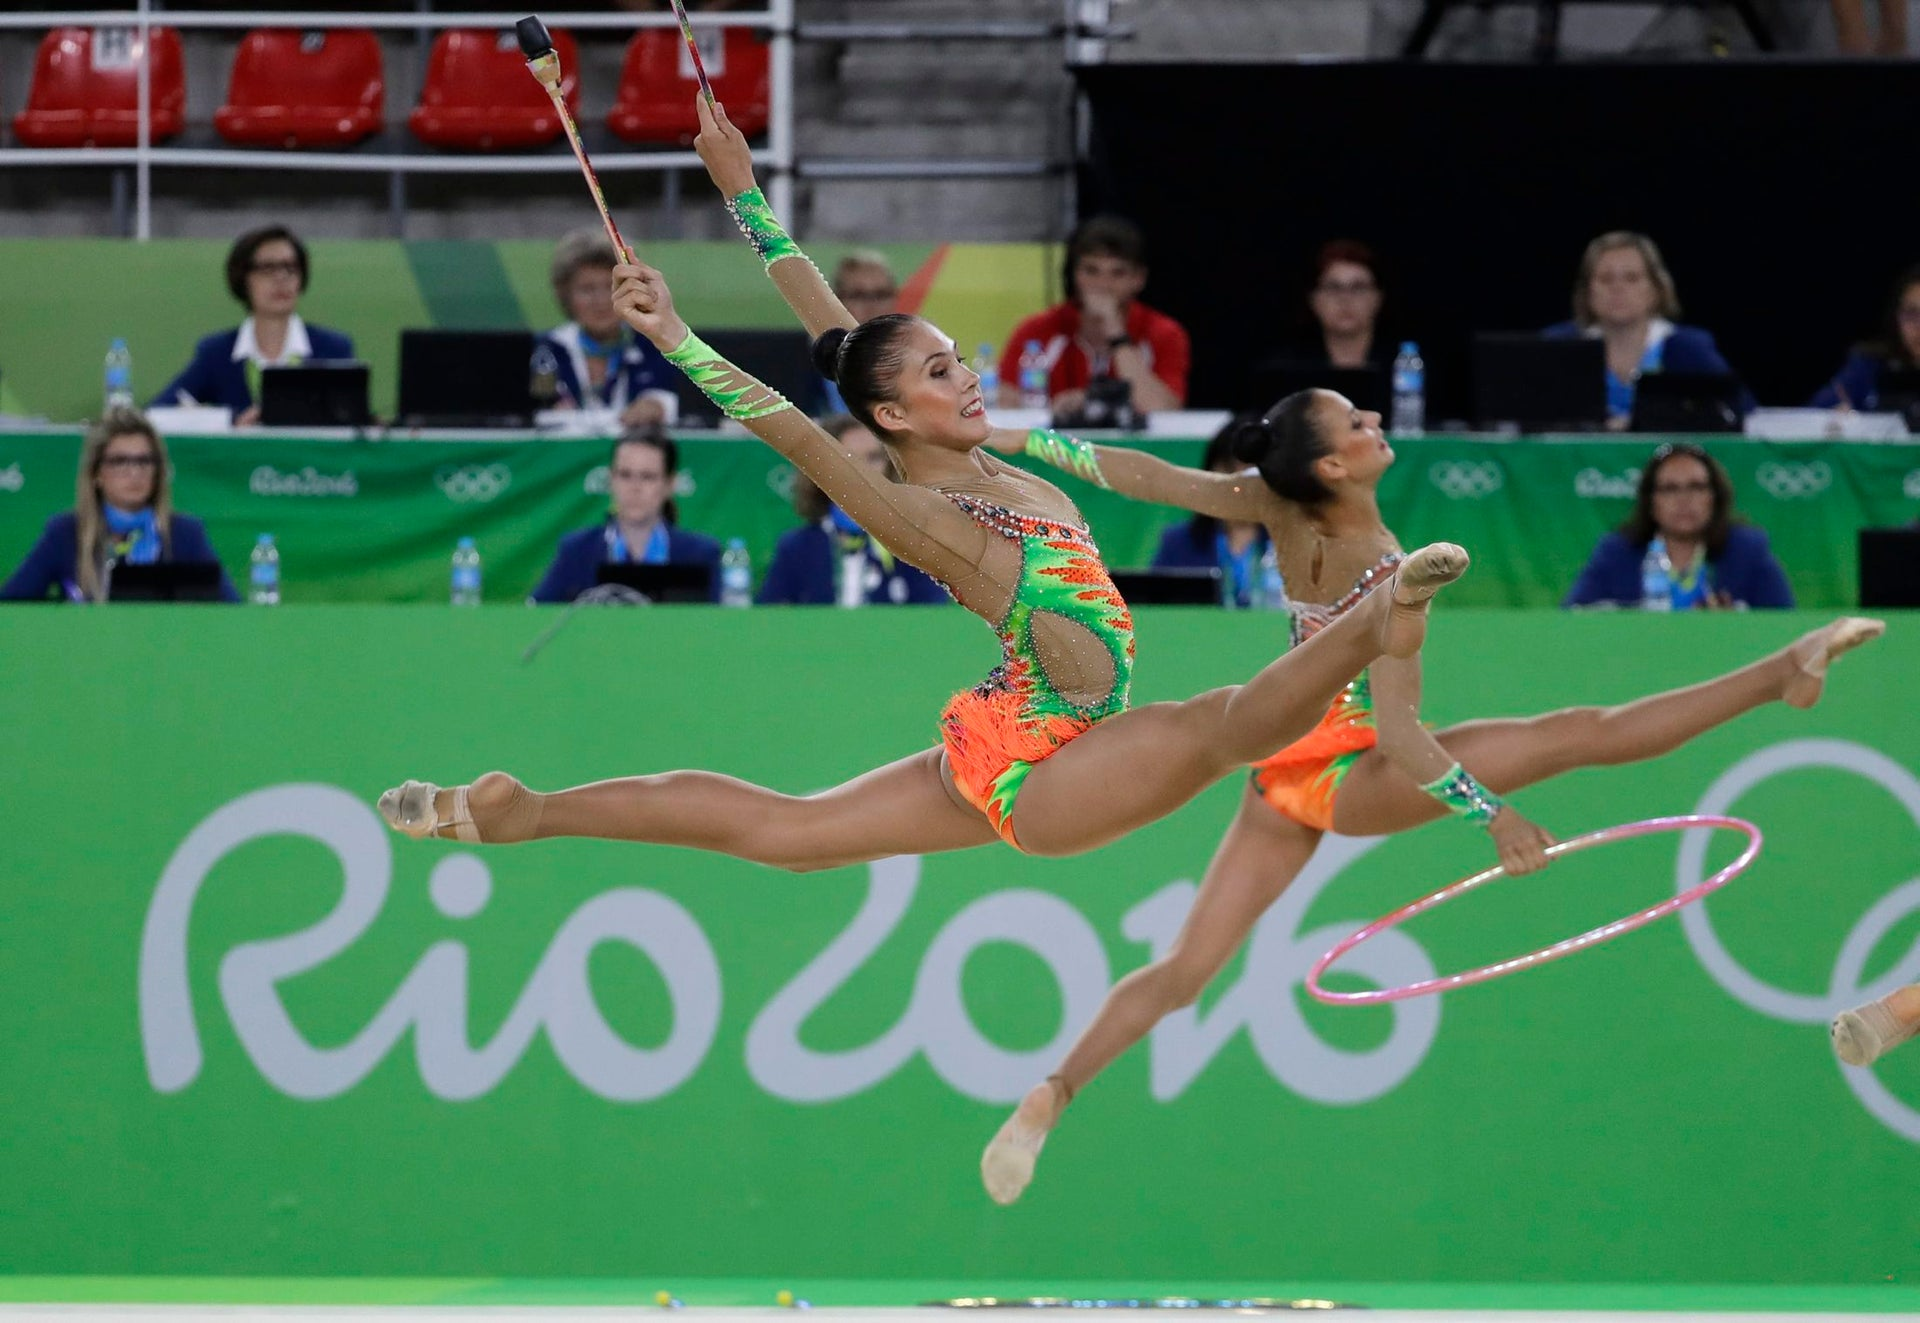 Team Israel performs during the rhythmic gymnastics group all-around qualifications at the 2016 Summer Olympics in Rio de Janeiro, Brazil, Saturday, Aug. 20, 2016.